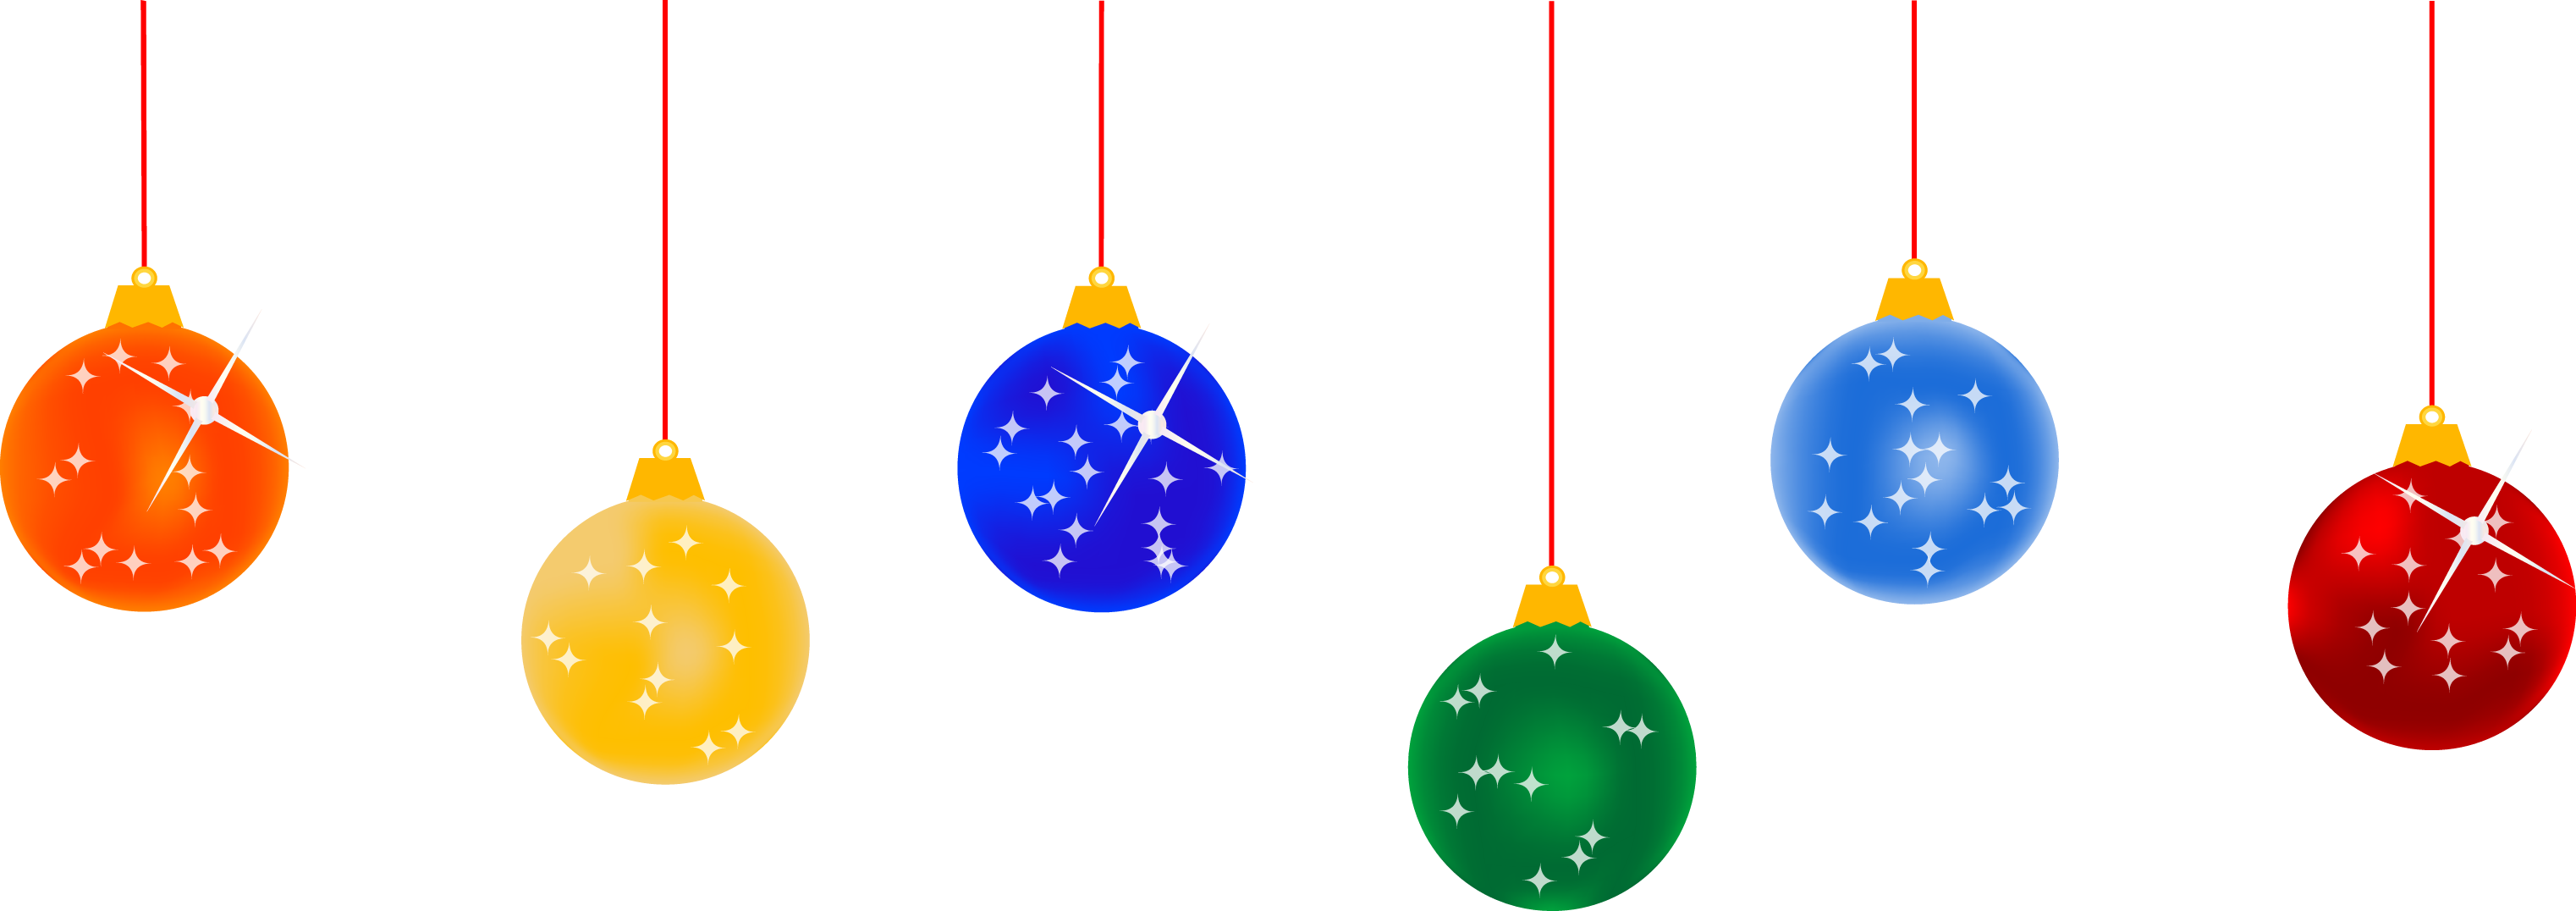 Christmas Picture PNG Image